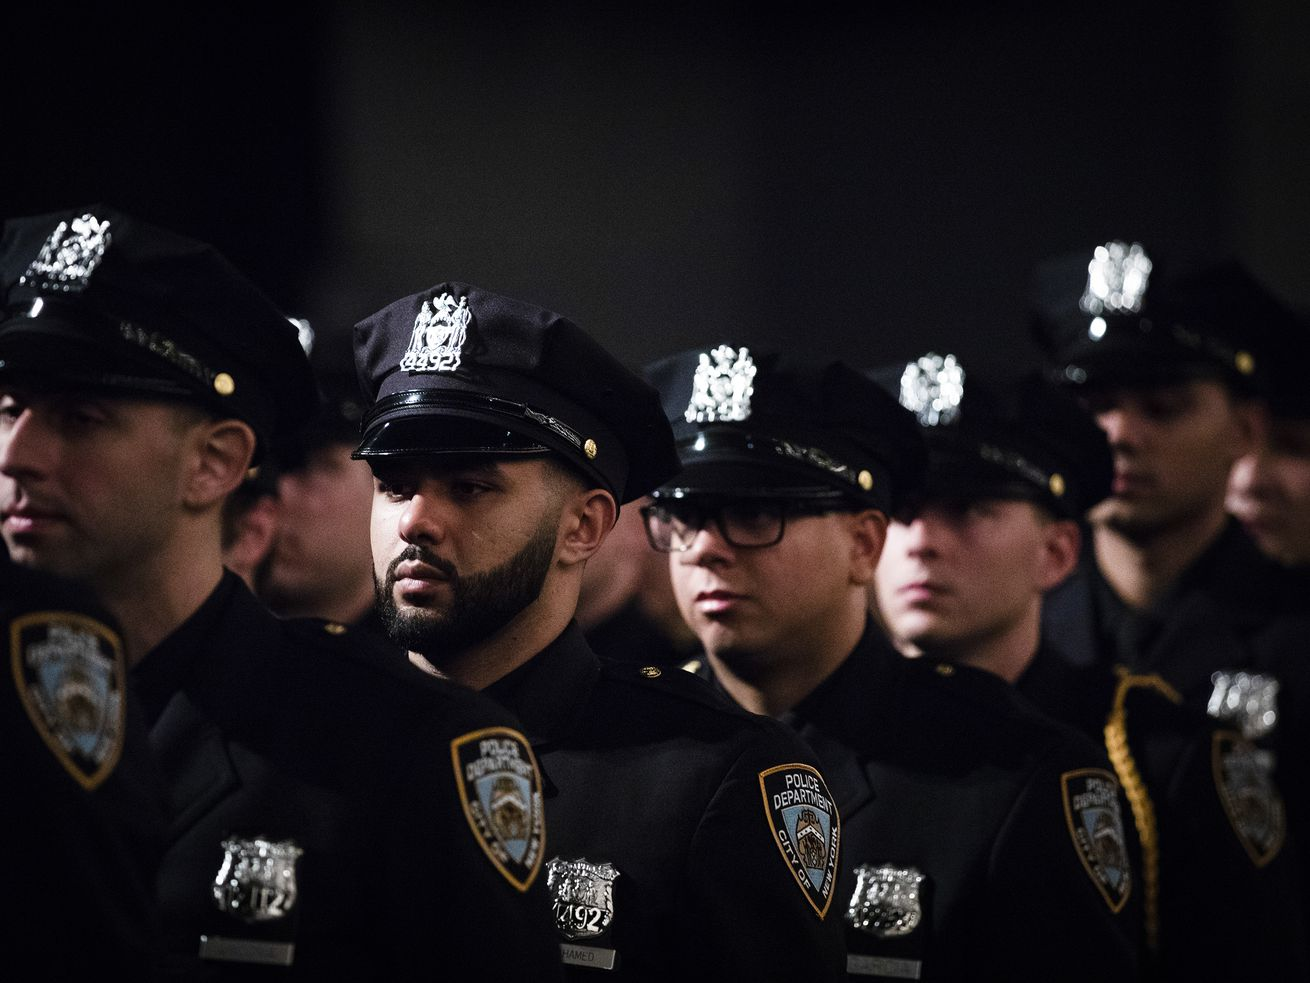 New York City Police Department officers standing in a line.